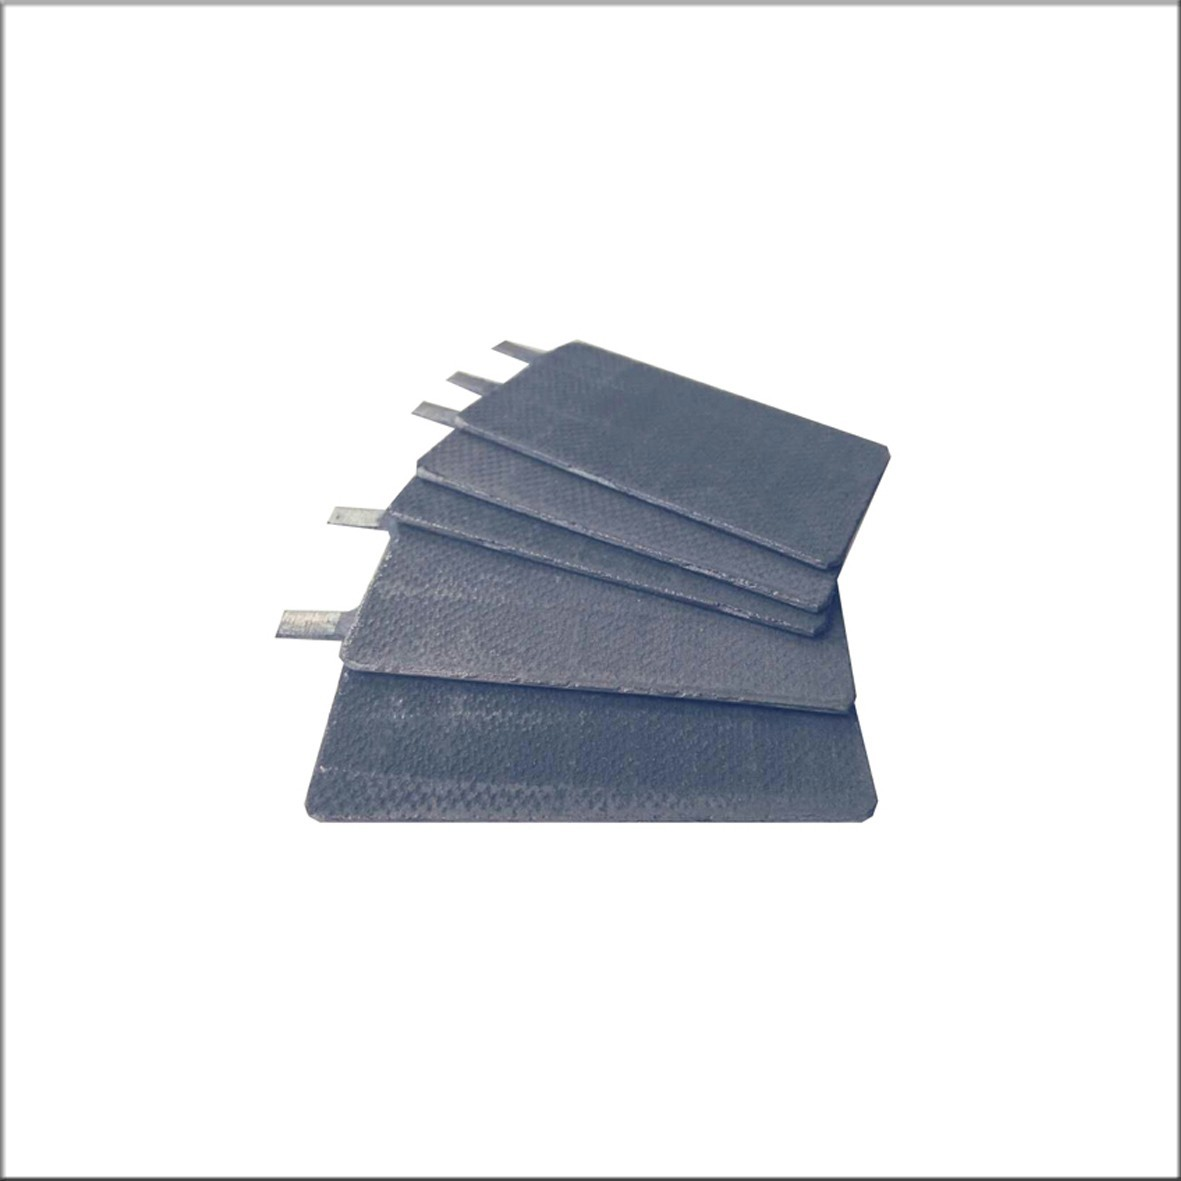 Battery Plate